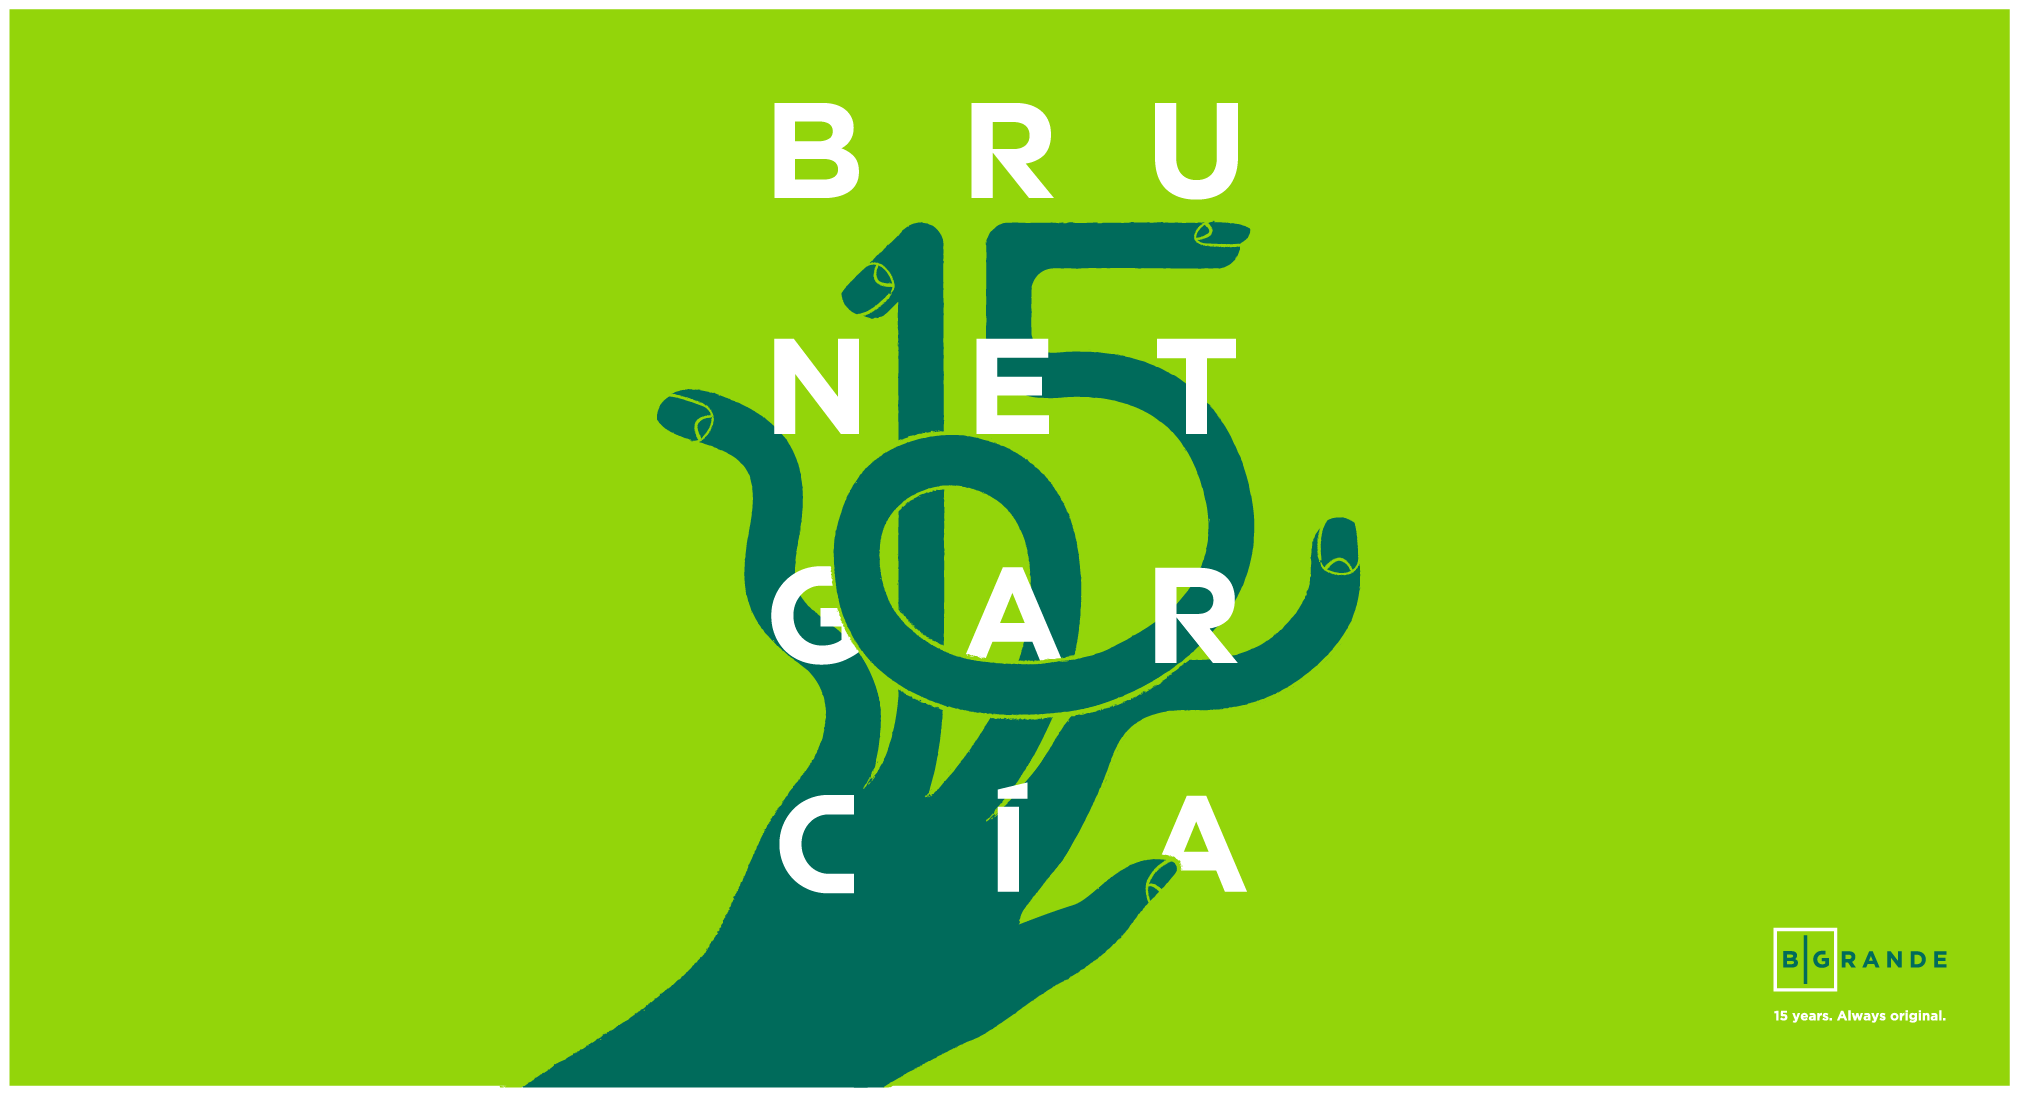 An illustration of a hand that transforms into the number 15 behind the name Brunet-García.